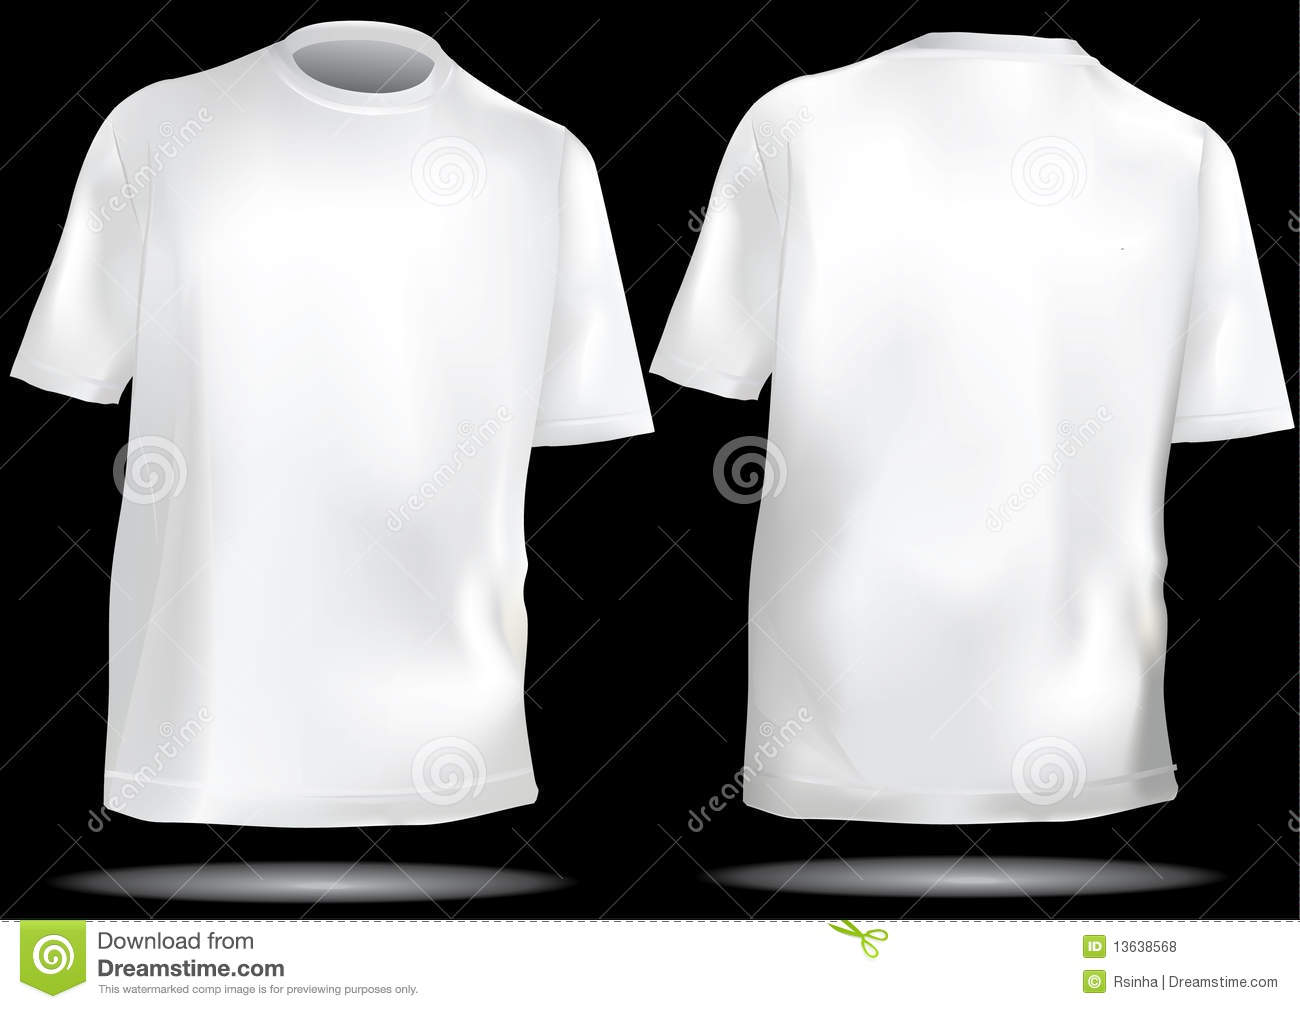 White t shirt front and back template - Back Front Shirt T Template Tshirt White